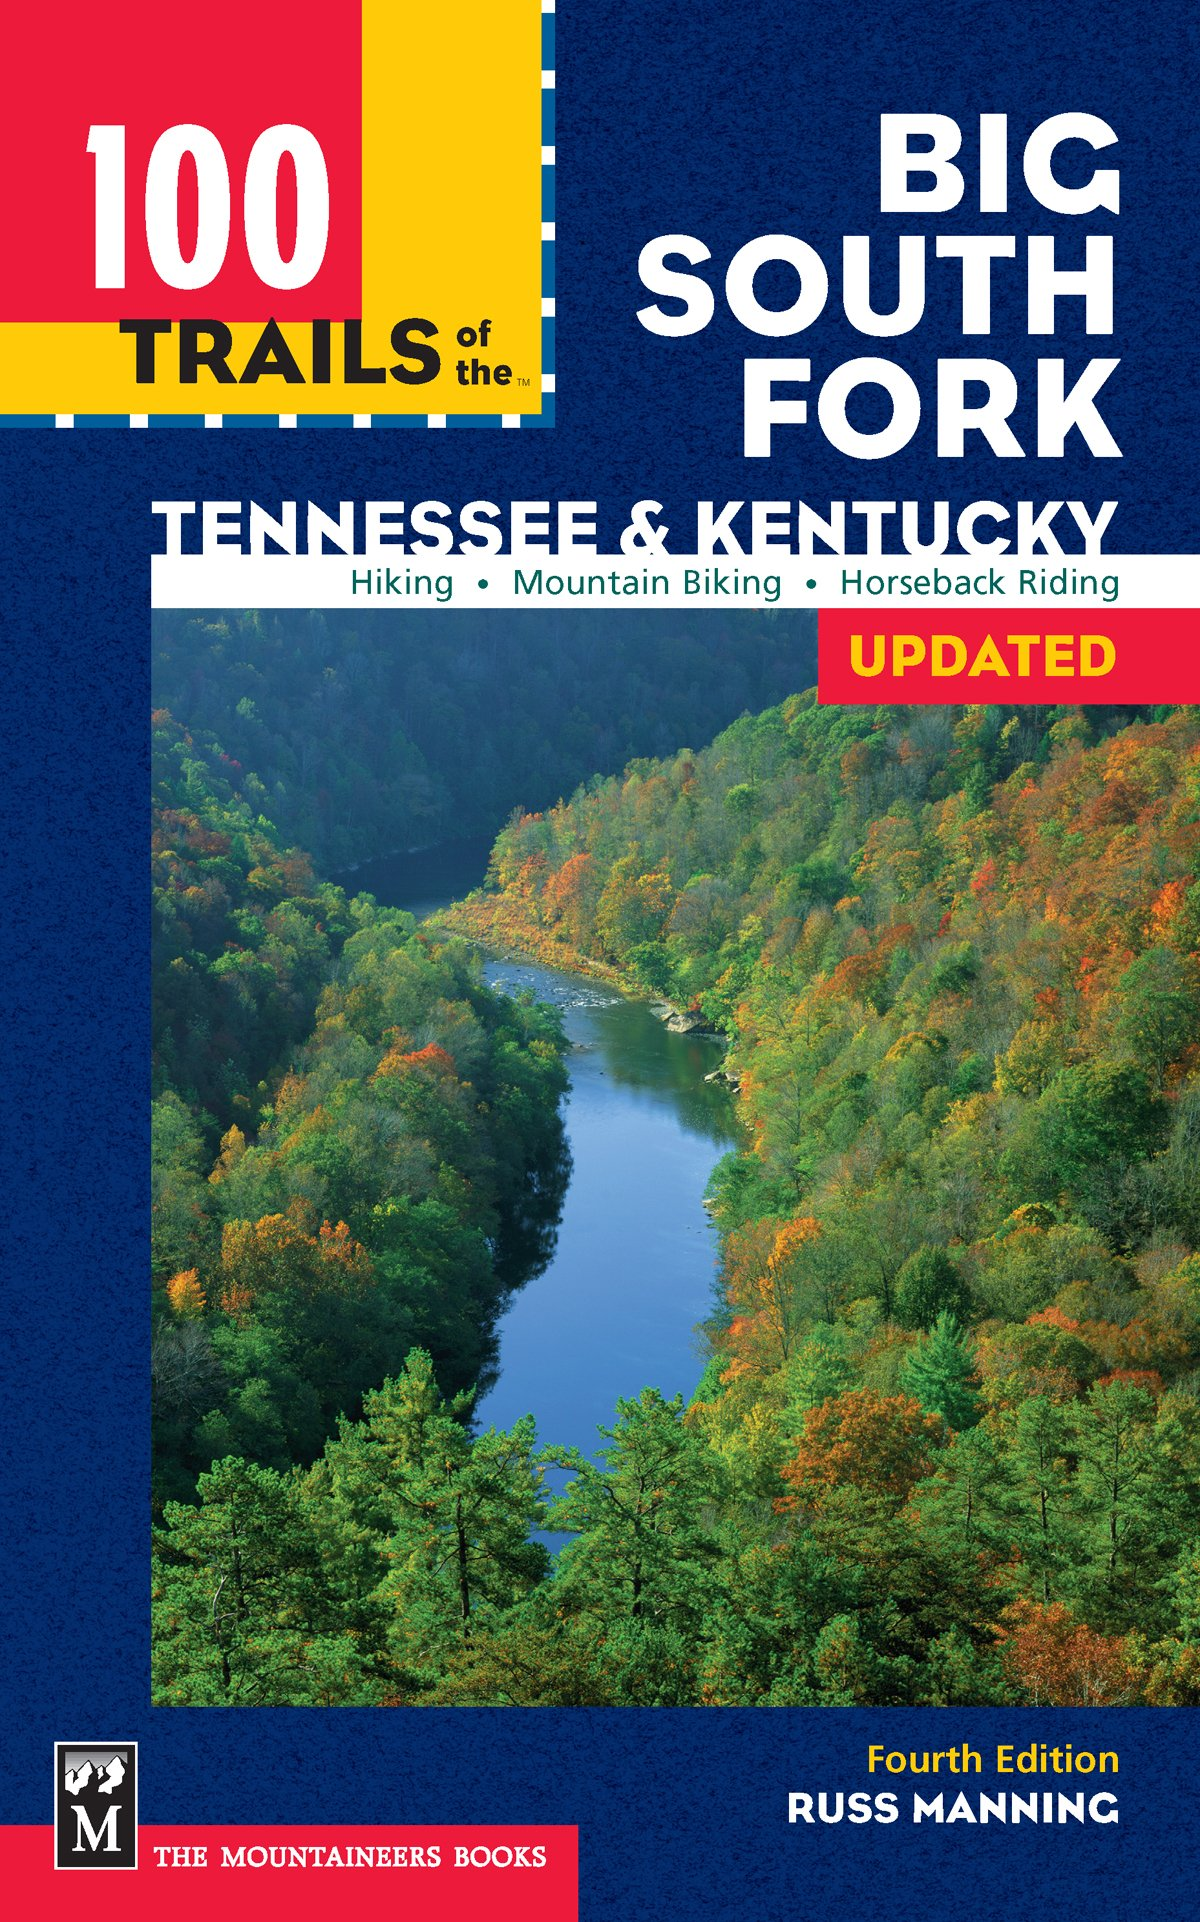 100 Trails of the Big South Fork: Tennessee & Kentucky (100 Hikes In...):  Russ Manning: 9780898866384: Amazon.com: Books